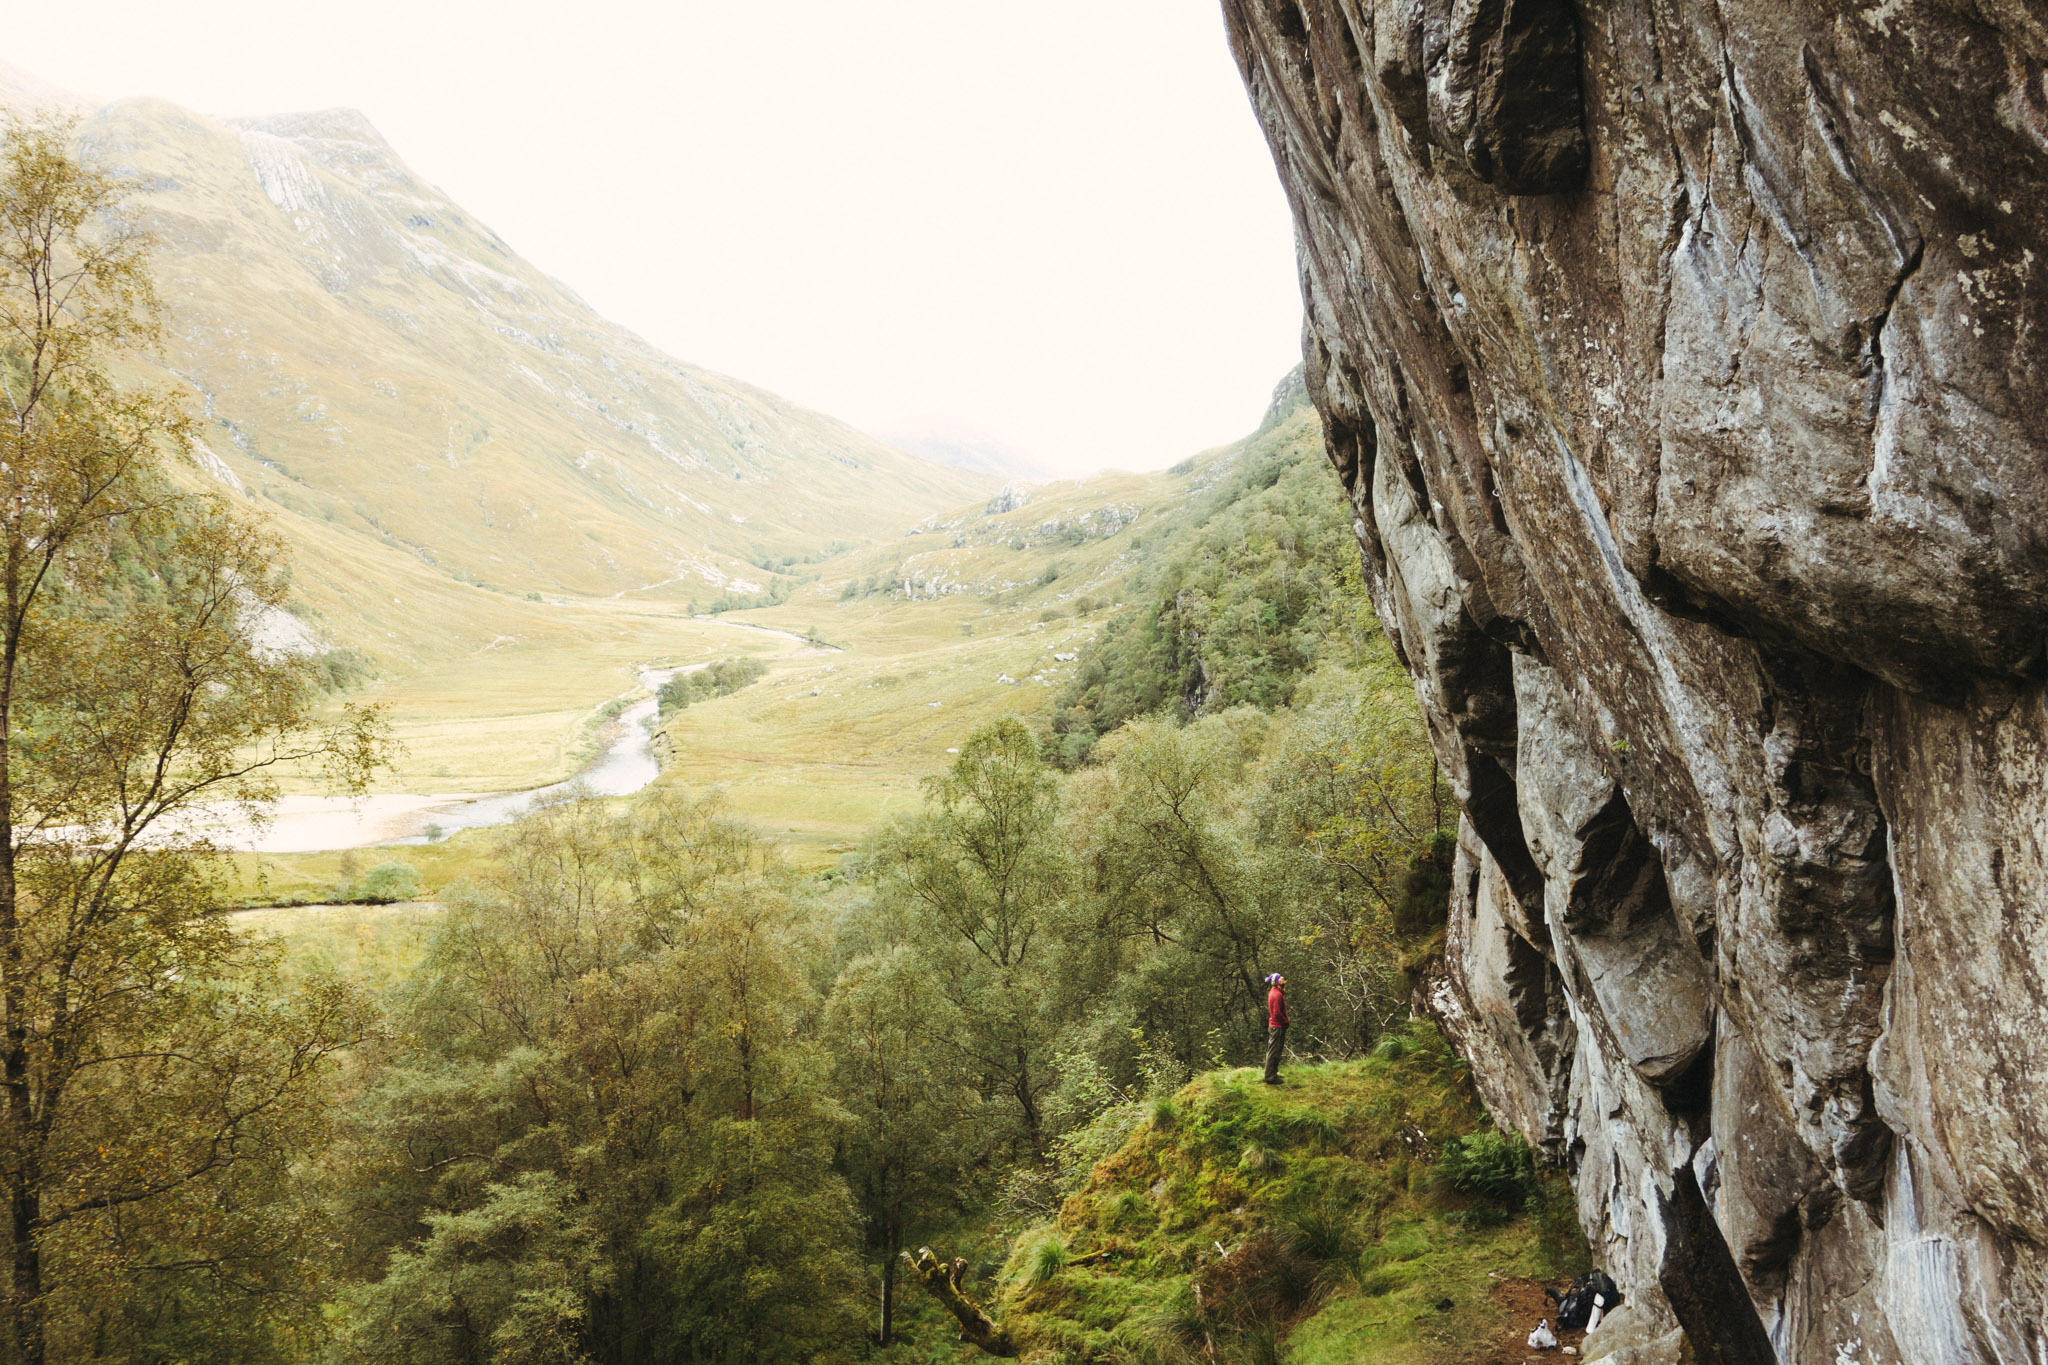 ©TomWoollard_Climbing_lifestyle-editorial-climber-in-epic-landscape-looking-at-massive-rockface-Scotland.jpg